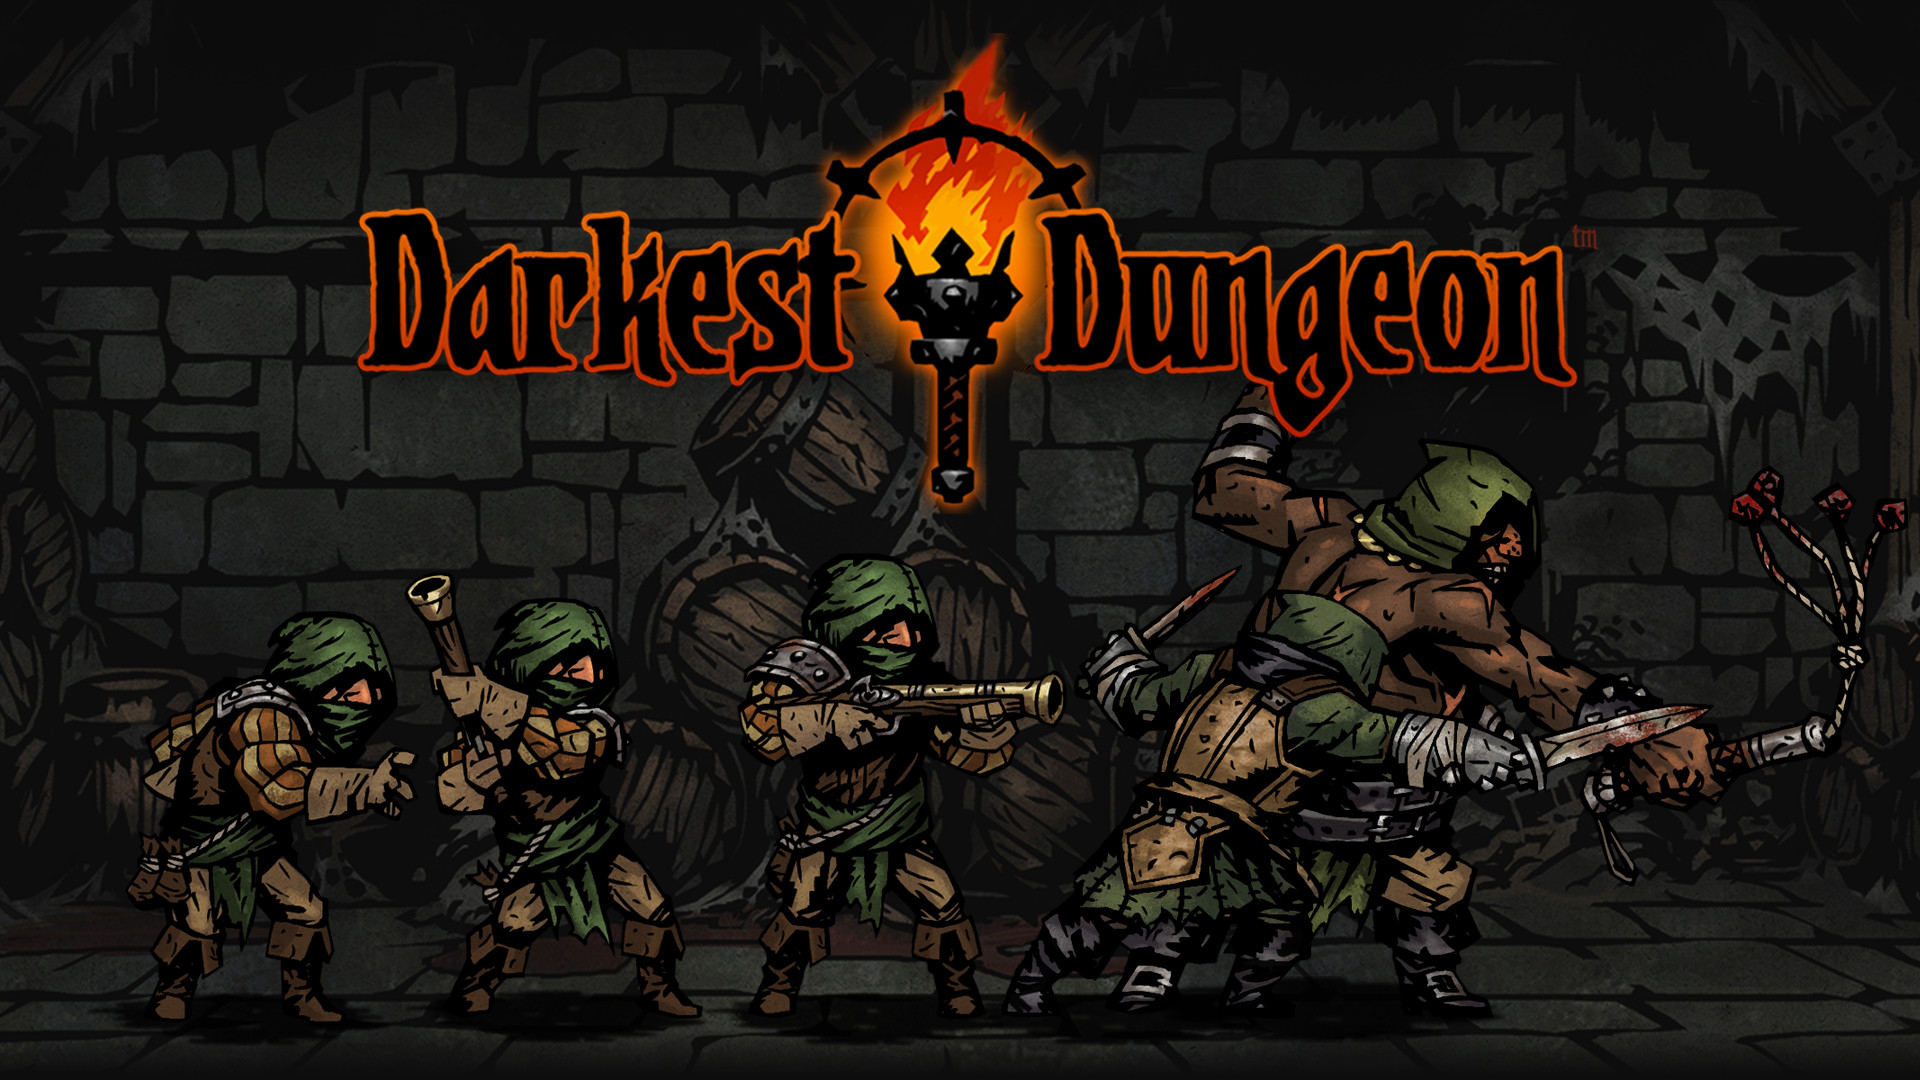 Darkest-Dungeon-set-1920x1080-I-made-in-my-spare-time-Need-iPhone-S-Plus-wallpaper-wpc5803953